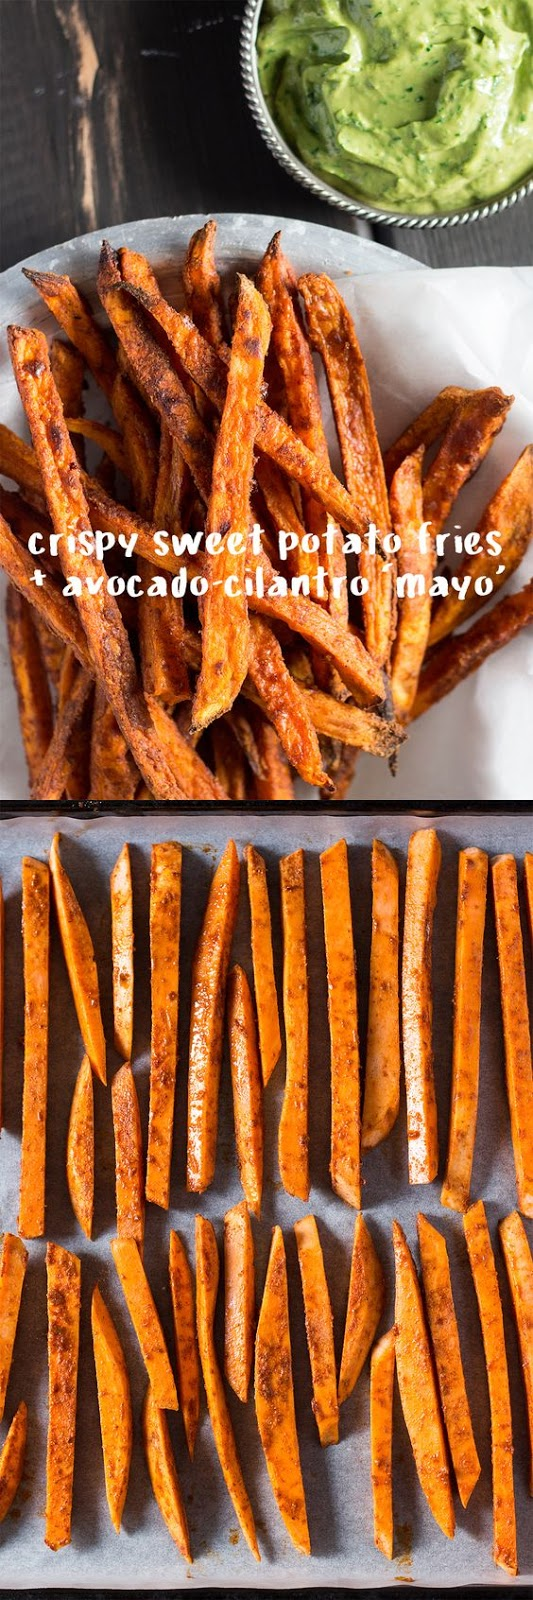 CRISPY SWEET POTATO FRIES WITH AVOCADO-CORIANDER DIP   #DESSERTS #HEALTHYFOOD #EASYRECIPES #DINNER #LAUCH #DELICIOUS #EASY #HOLIDAYS #RECIPE #SPECIALDIET #WORLDCUISINE #CAKE #APPETIZERS #HEALTHYRECIPES #DRINKS #COOKINGMETHOD #ITALIANRECIPES #MEAT #VEGANRECIPES #COOKIES #PASTA #FRUIT #SALAD #SOUPAPPETIZERS #NONALCOHOLICDRINKS #MEALPLANNING #VEGETABLES #SOUP #PASTRY #CHOCOLATE #DAIRY #ALCOHOLICDRINKS #BULGURSALAD #BAKING #SNACKS #BEEFRECIPES #MEATAPPETIZERS #MEXICANRECIPES #BREAD #ASIANRECIPES #SEAFOODAPPETIZERS #MUFFINS #BREAKFASTANDBRUNCH #CONDIMENTS #CUPCAKES #CHEESE #CHICKENRECIPES #PIE #COFFEE #NOBAKEDESSERTS #HEALTHYSNACKS #SEAFOOD #GRAIN #LUNCHESDINNERS #MEXICAN #QUICKBREAD #LIQUOR